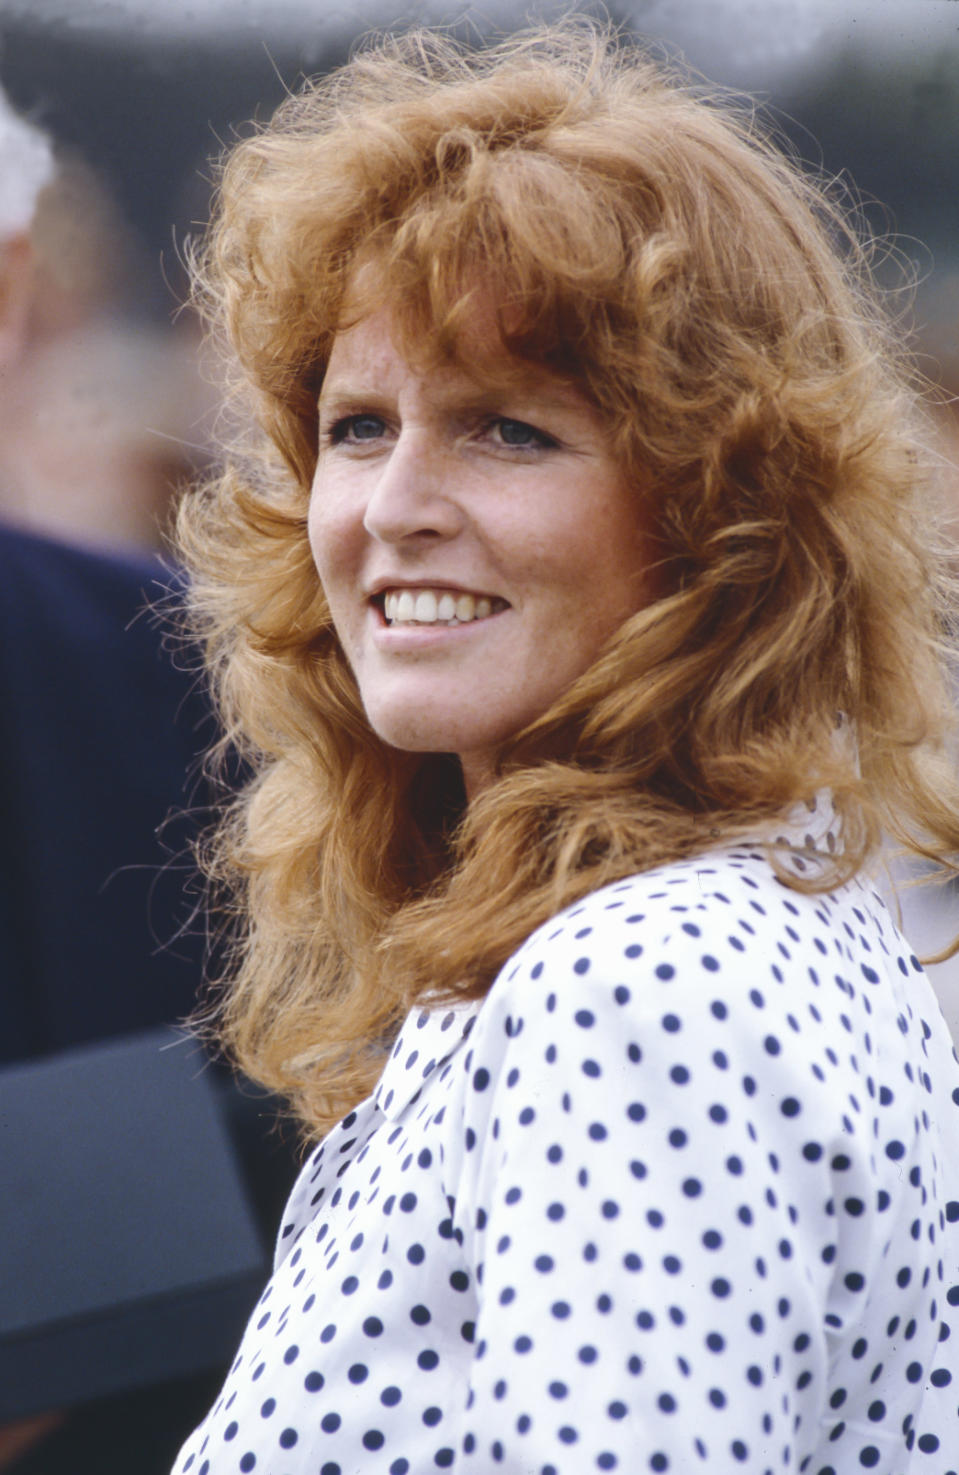 Sarah Ferguson was a cleaner before meeting Prince Andrew. [Photo: Getty Images]